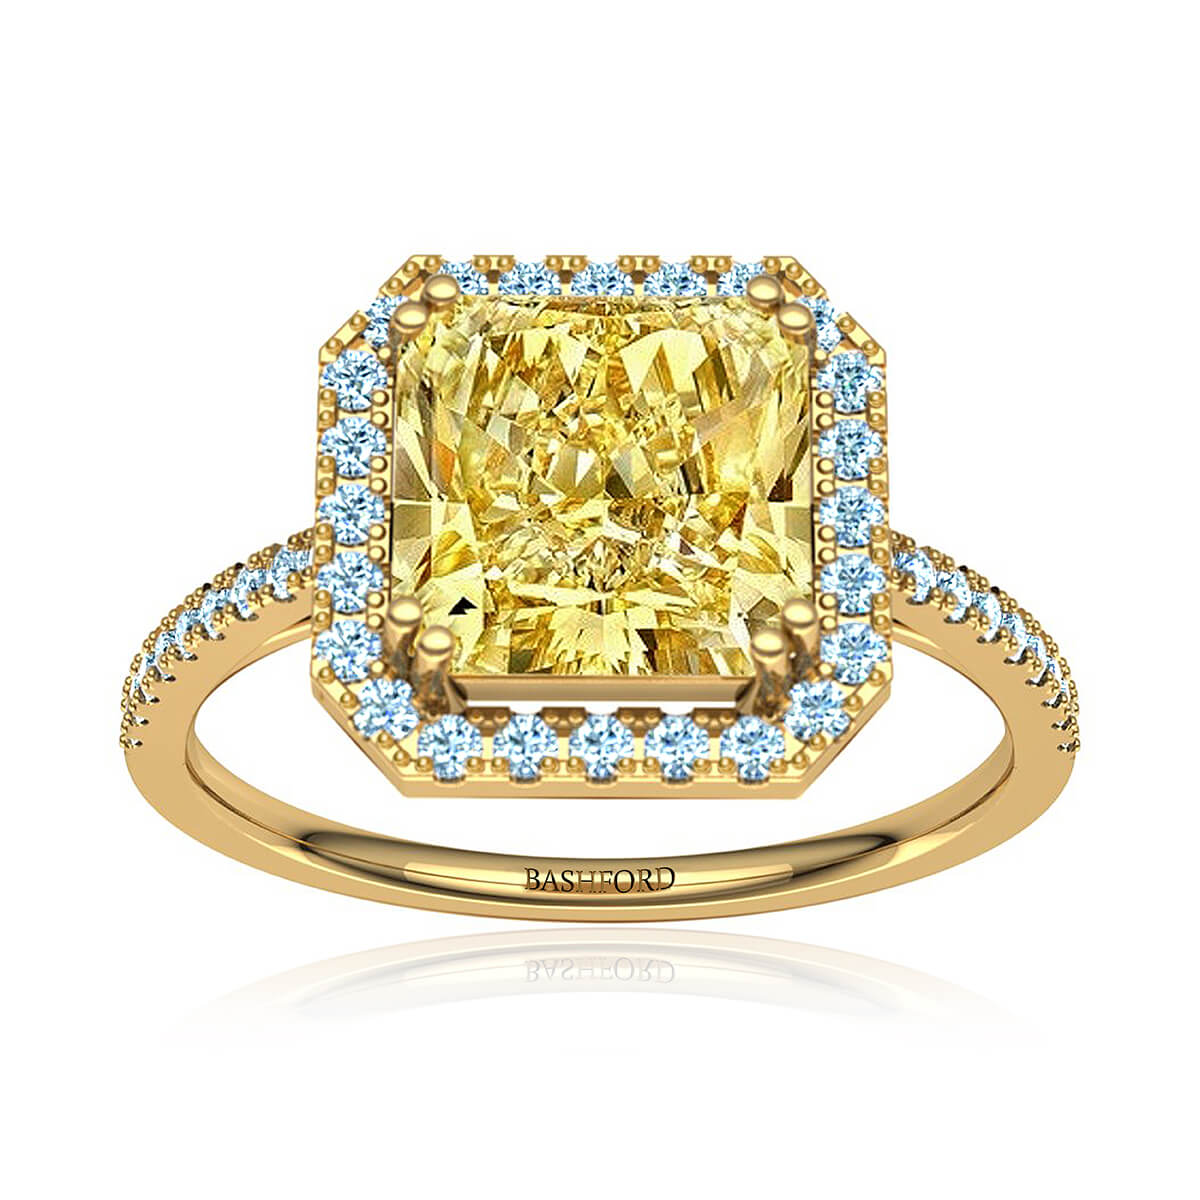 Queen Ulrika Diamond Ring (with 1 Asscher Carat Yellow Diamond)